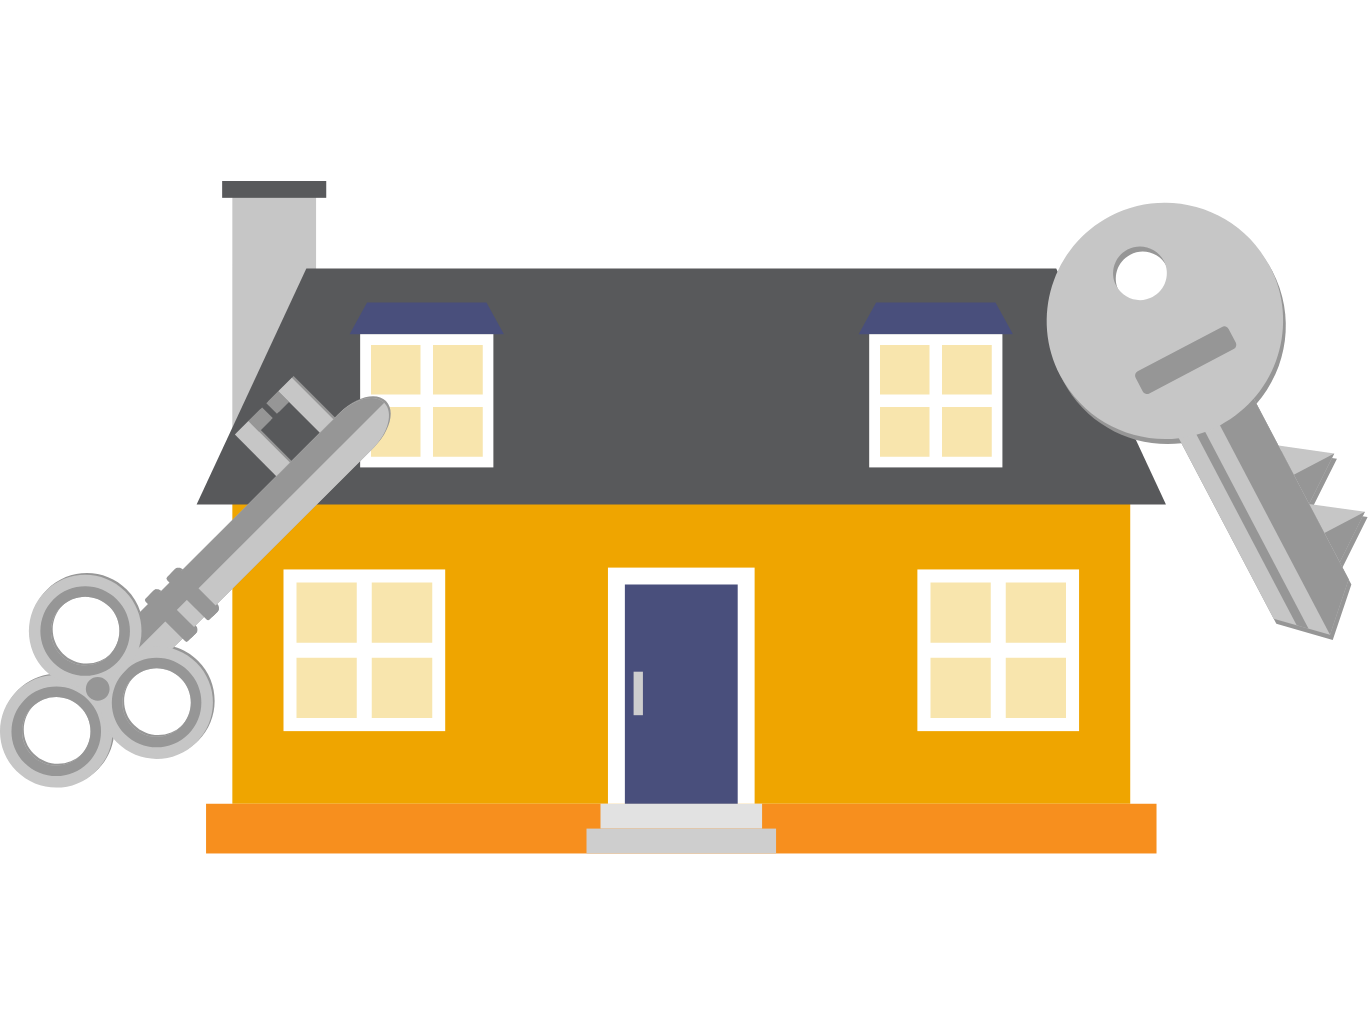 vector of house with keys outside